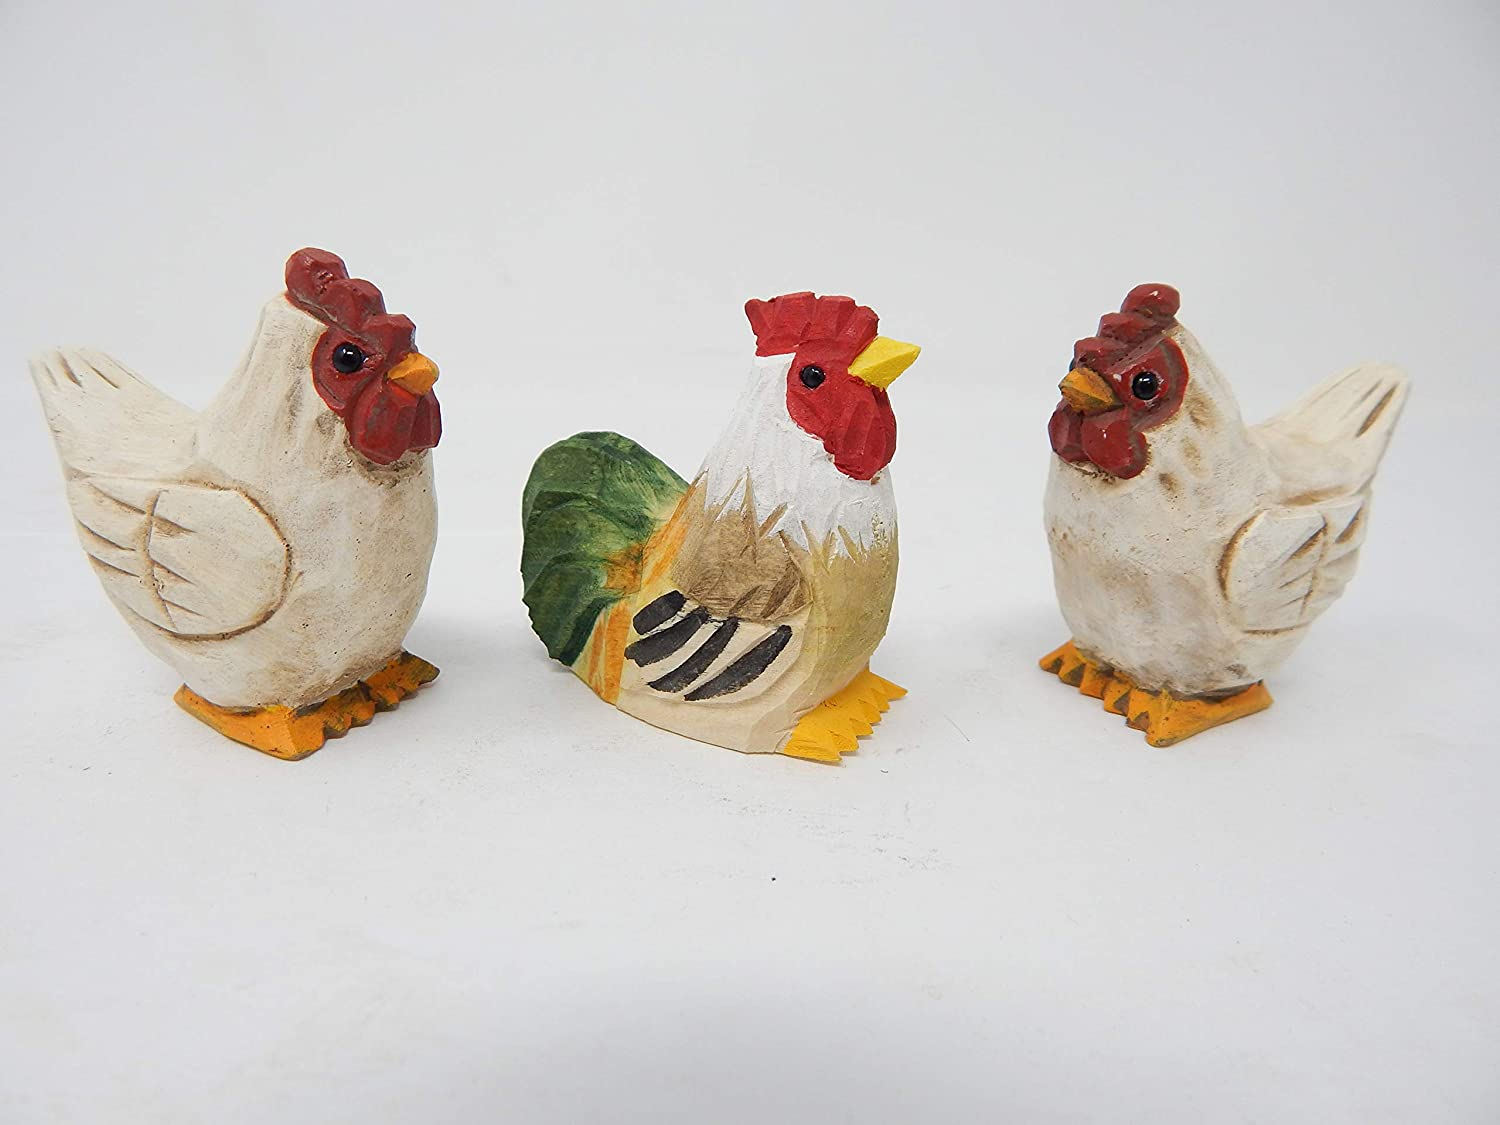 Hens & Rooster - Miniature Hand-Painted Wooden Rooster & Hens Vintage Art Decoy Mini Carved Ornament Figurine Small Farm Chicken Birds.